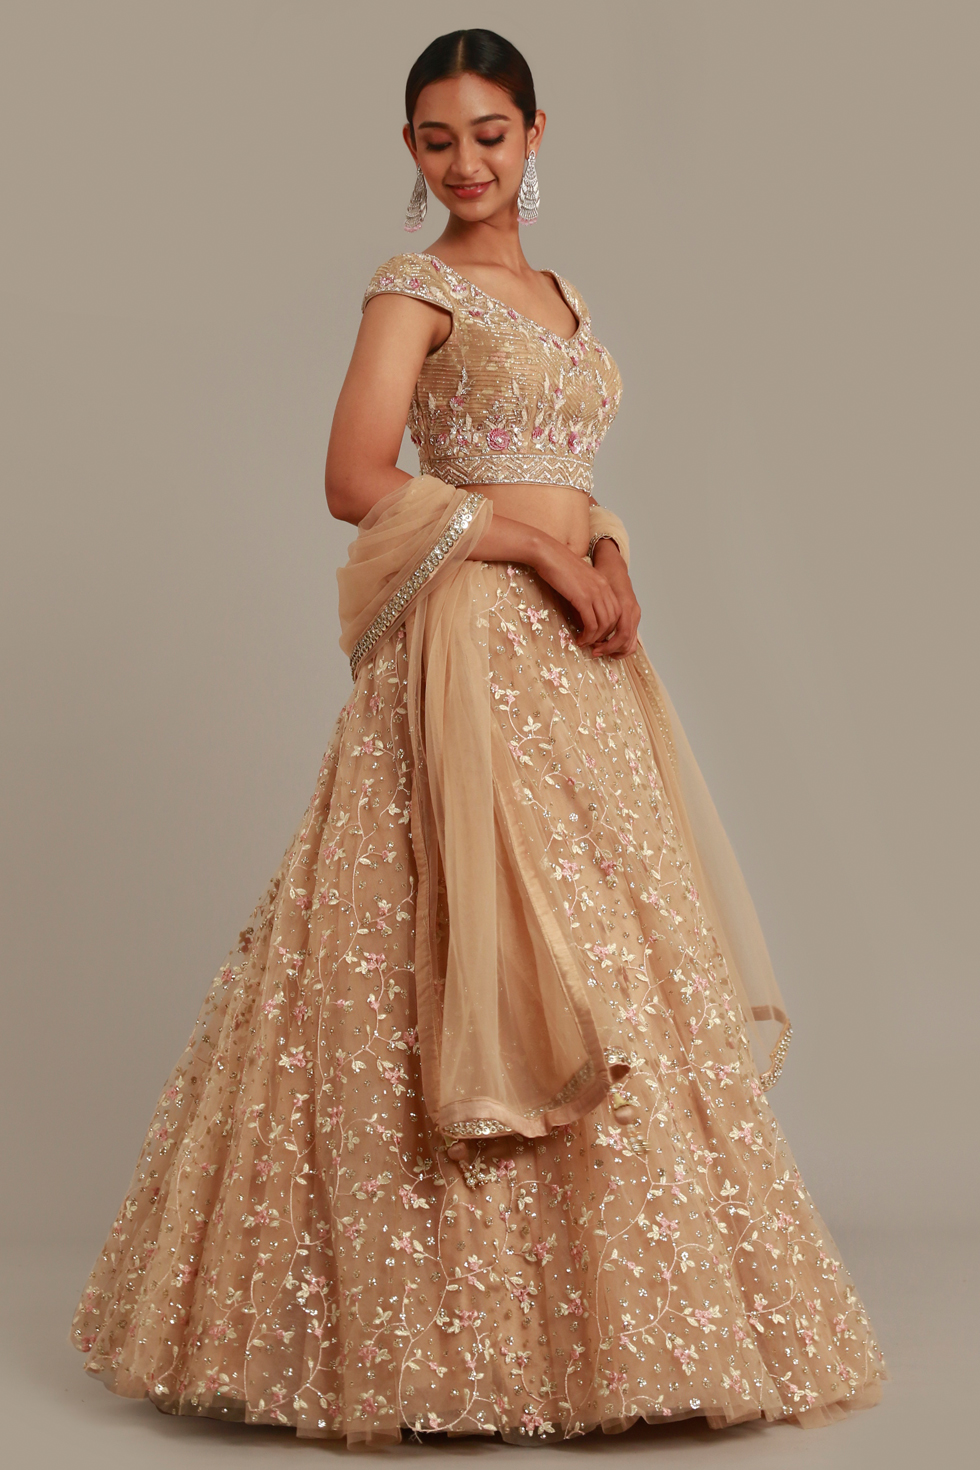 Beige gold lehenga set with contrast embroidery and matching dupatta